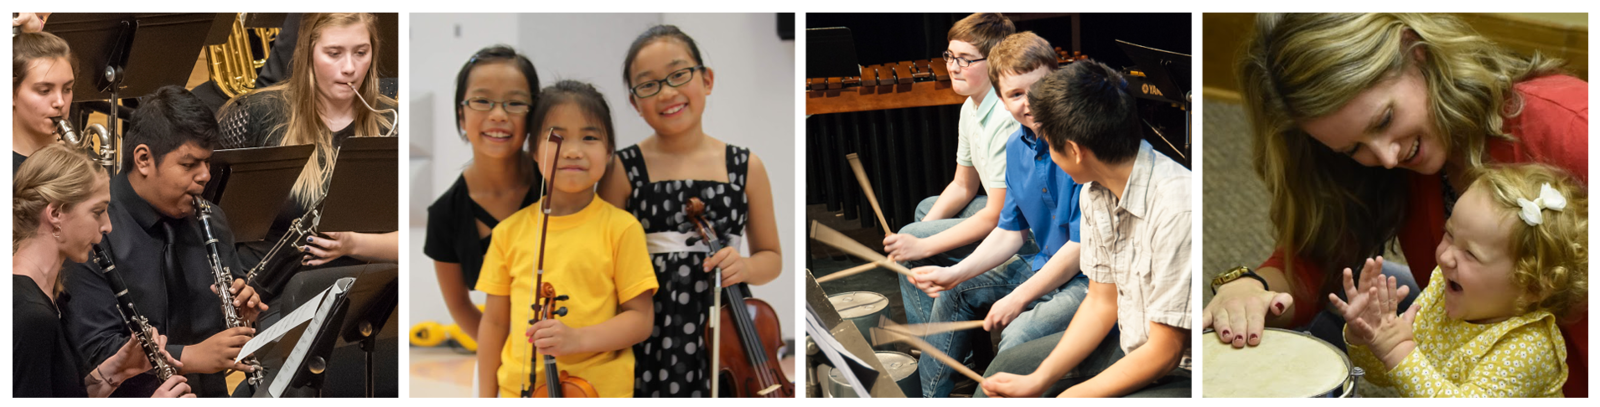 Four photos: Wind Ensemble playing during a concert, three young string players smiling and posing with their instruments, a drumming ensemble playing and grinning at each other, a mother and toddler playing a drum